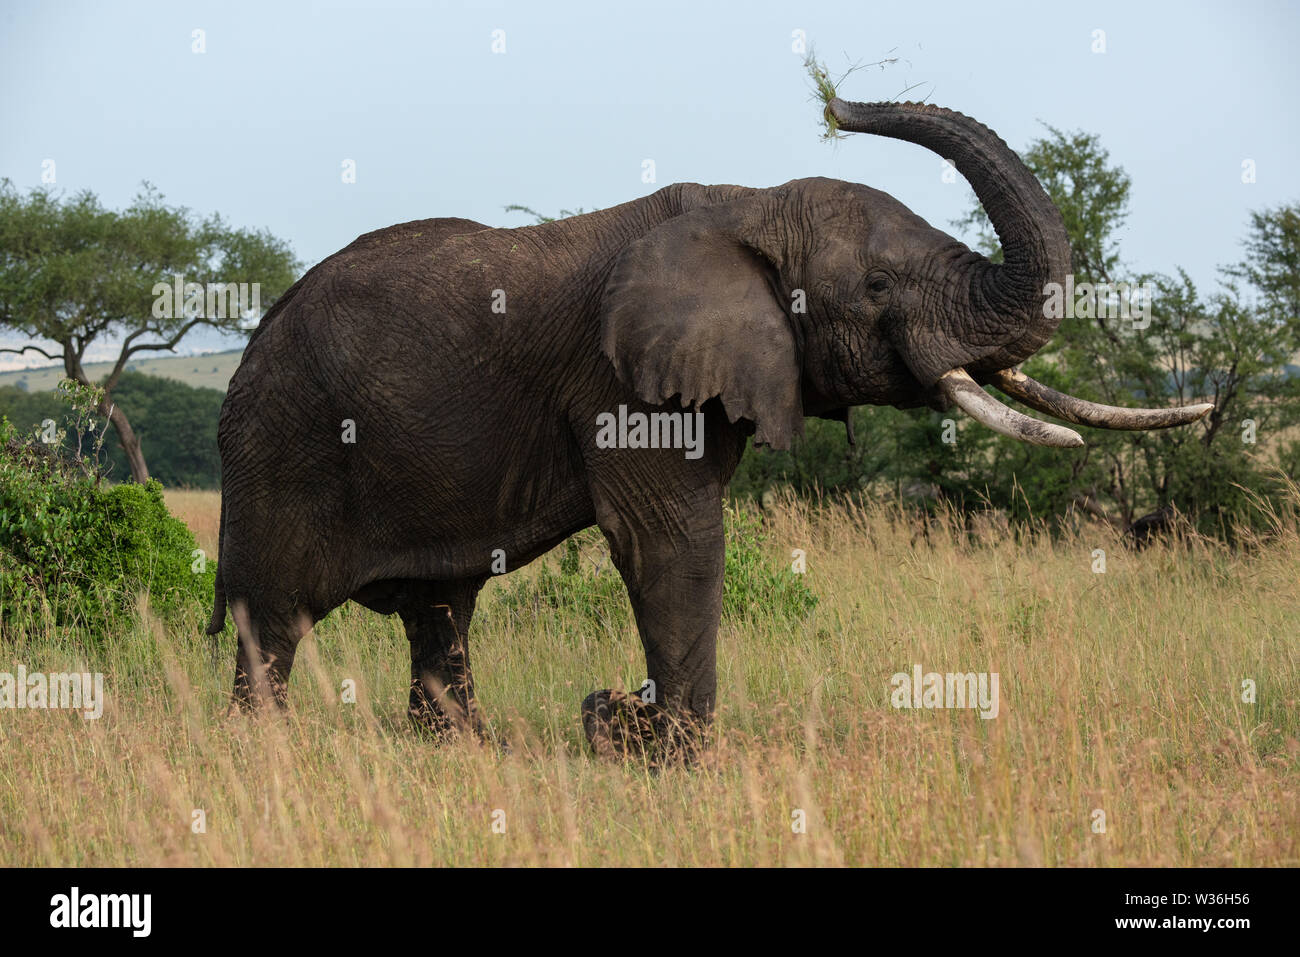 African elephant lifting trunk while eating grass - Stock Image